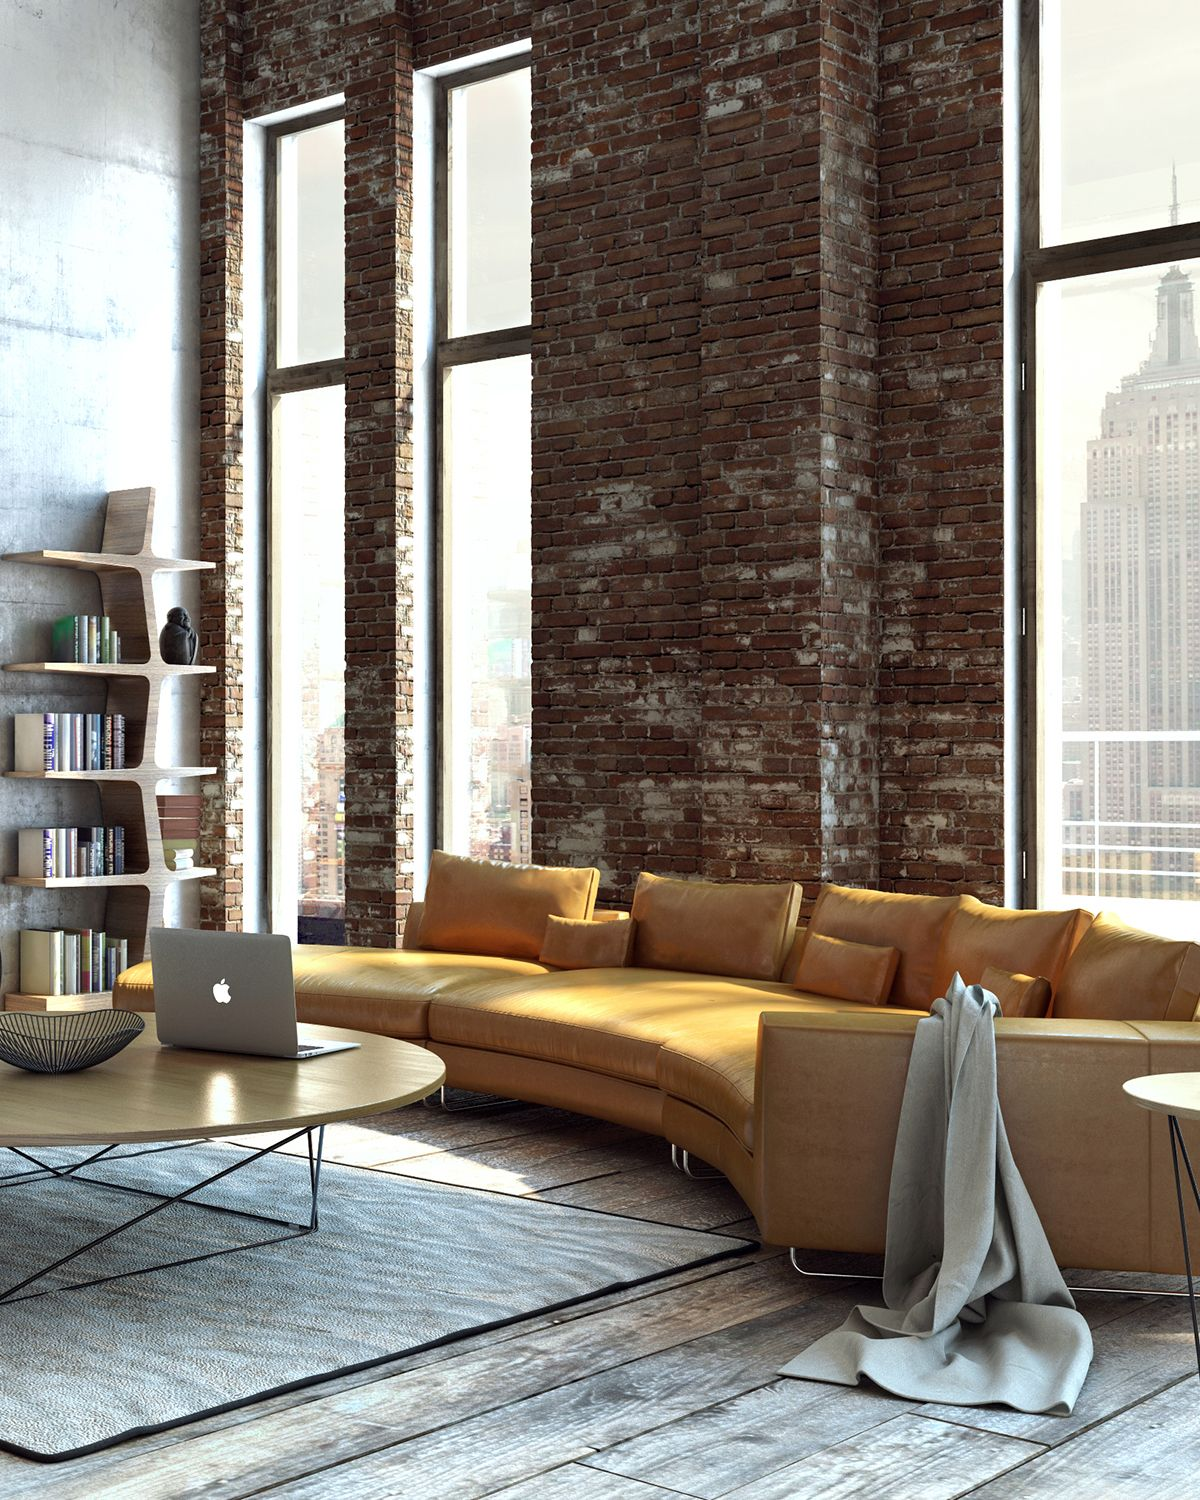 Style your urban loft with this gorgeous la furniture sectional and